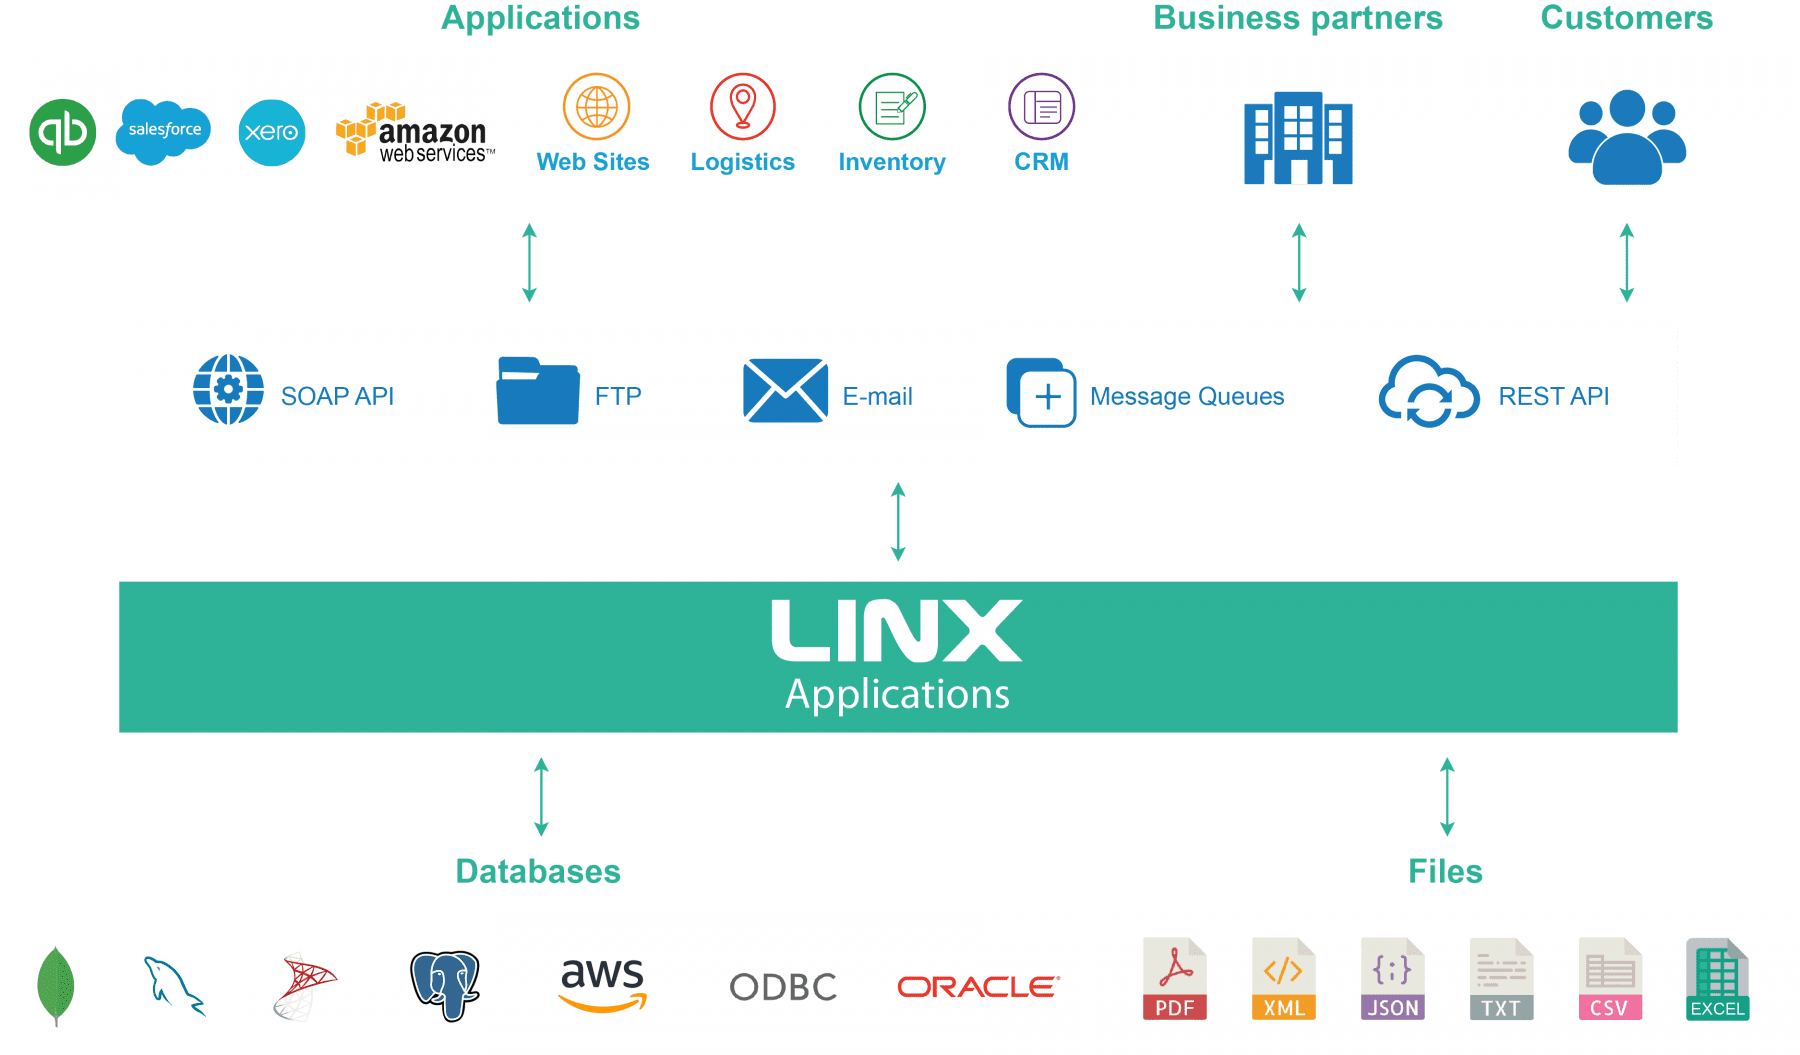 Linx IT architecture